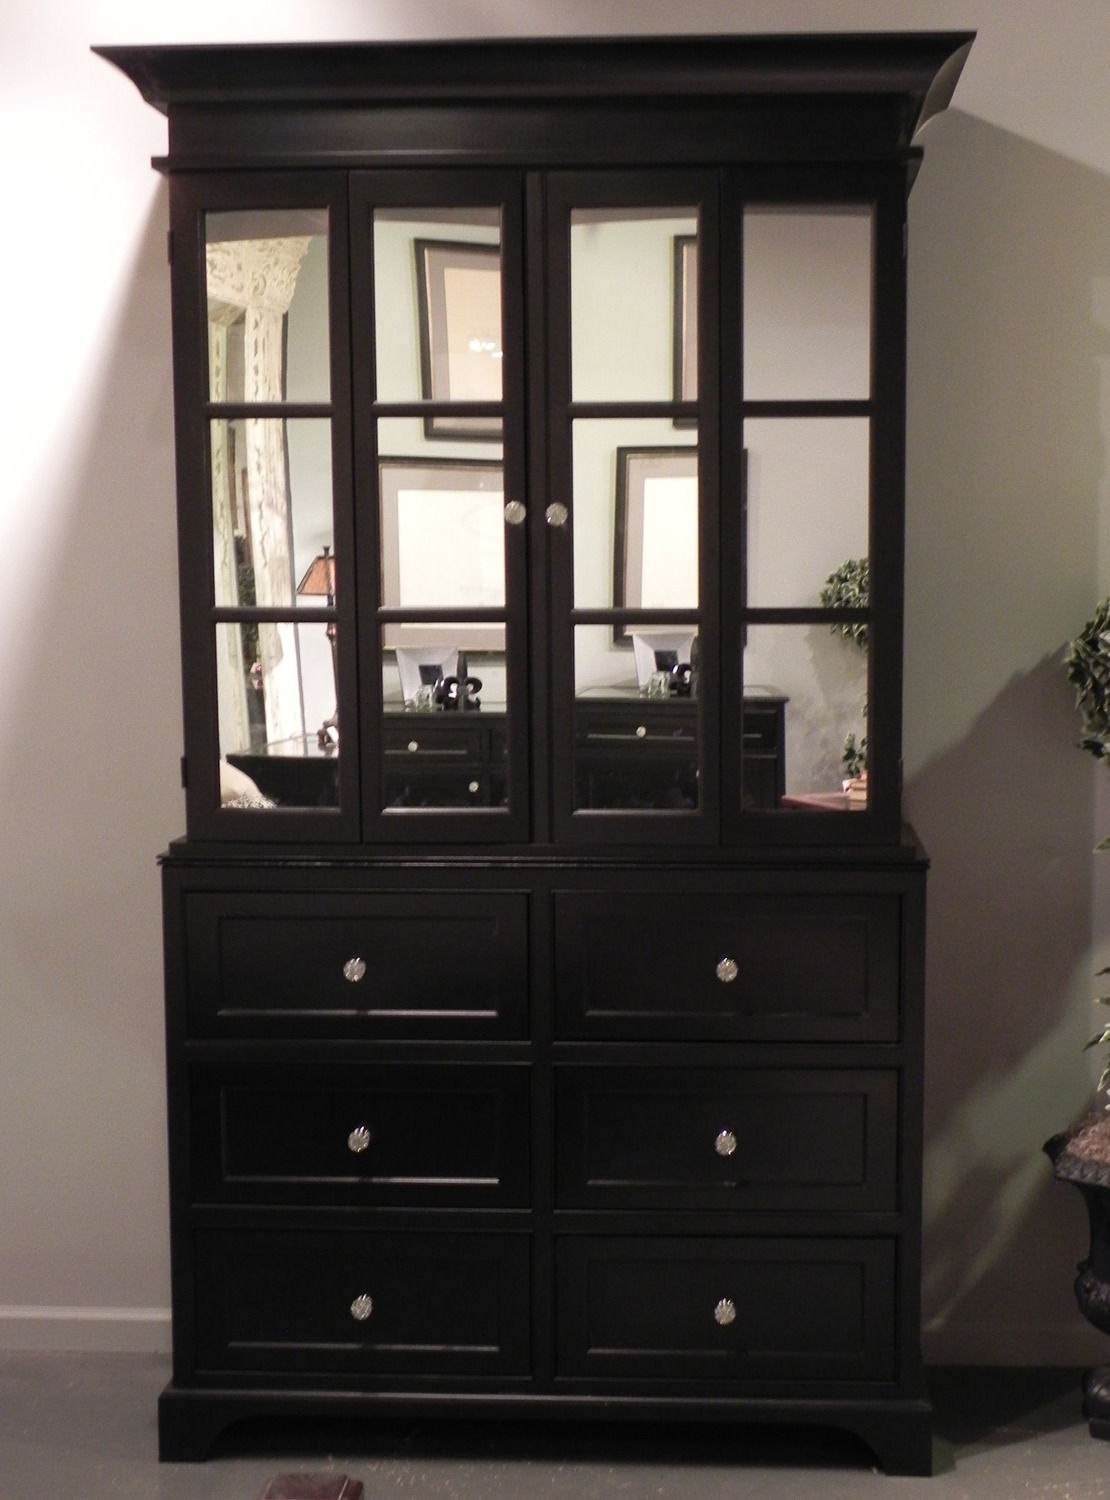 Tv Cabinet with Doors Unique Black Painted Tv Cabinet with Mirror Doors